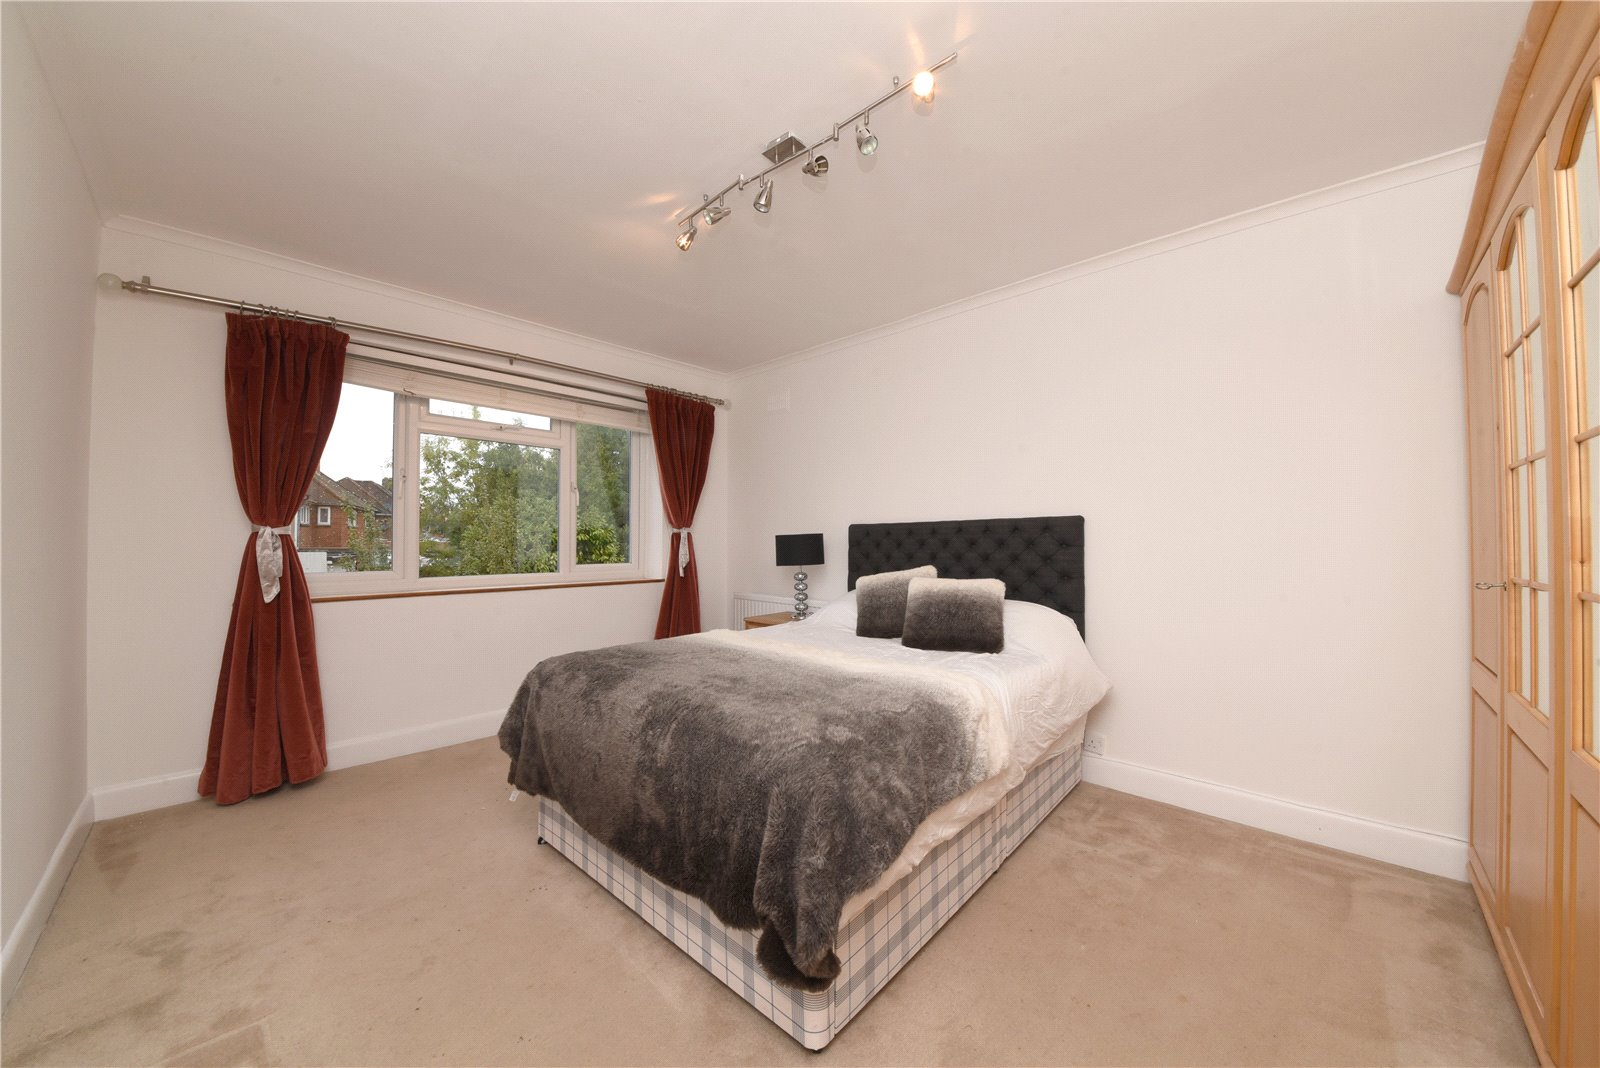 3 bed house for sale in High Barnet, EN5 1AL 4